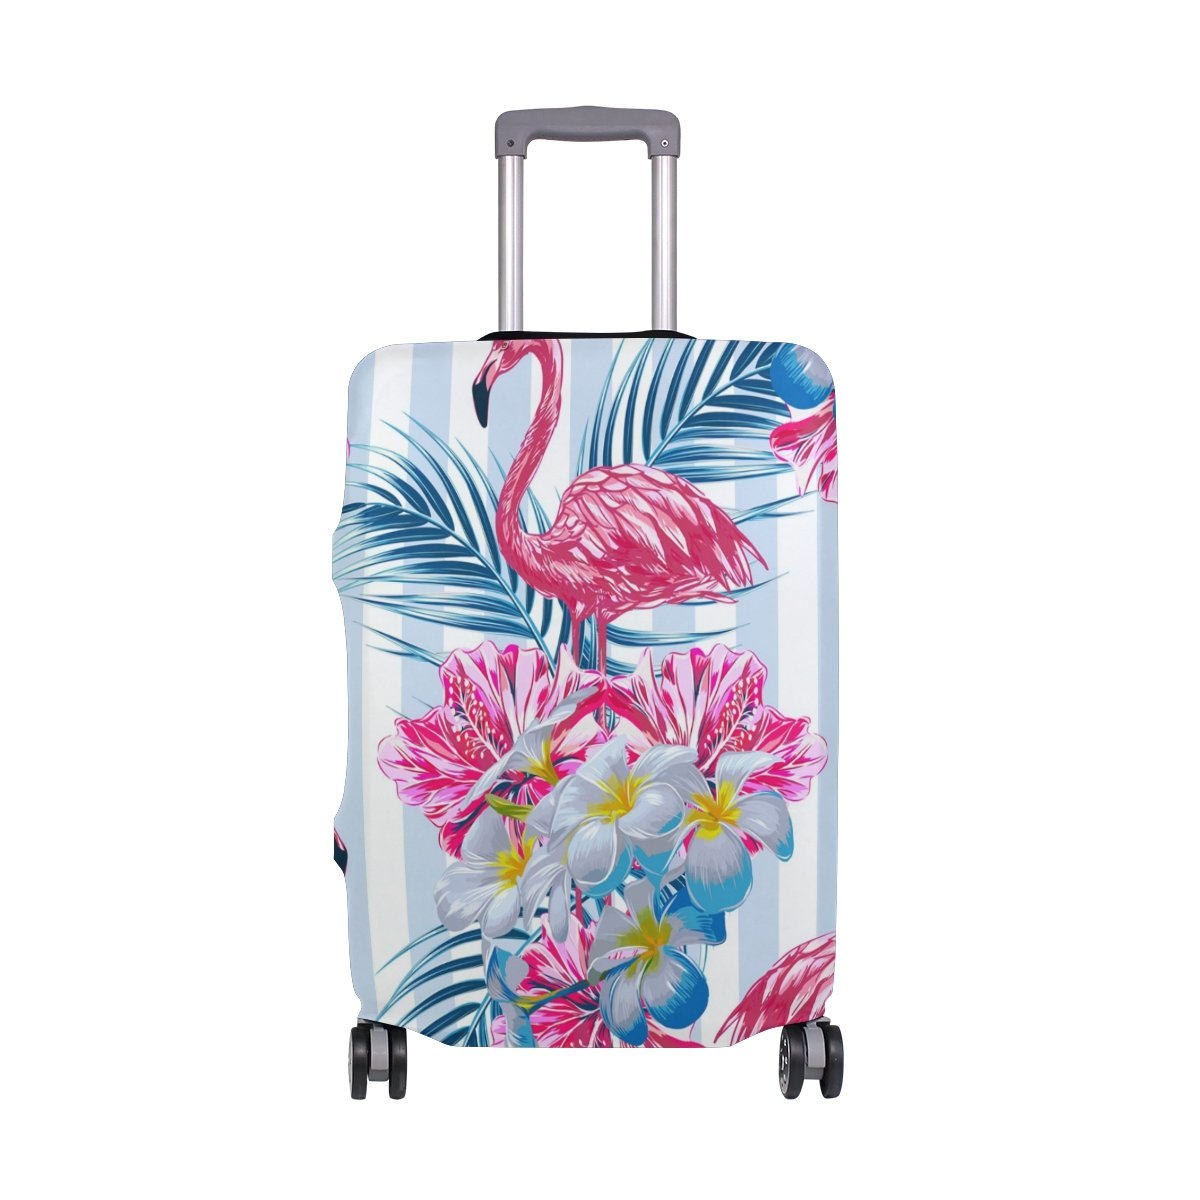 Vintage Summer Tropical Flamingo Striped Suitcase Luggage Cover Protector for Travel Kids Men Women